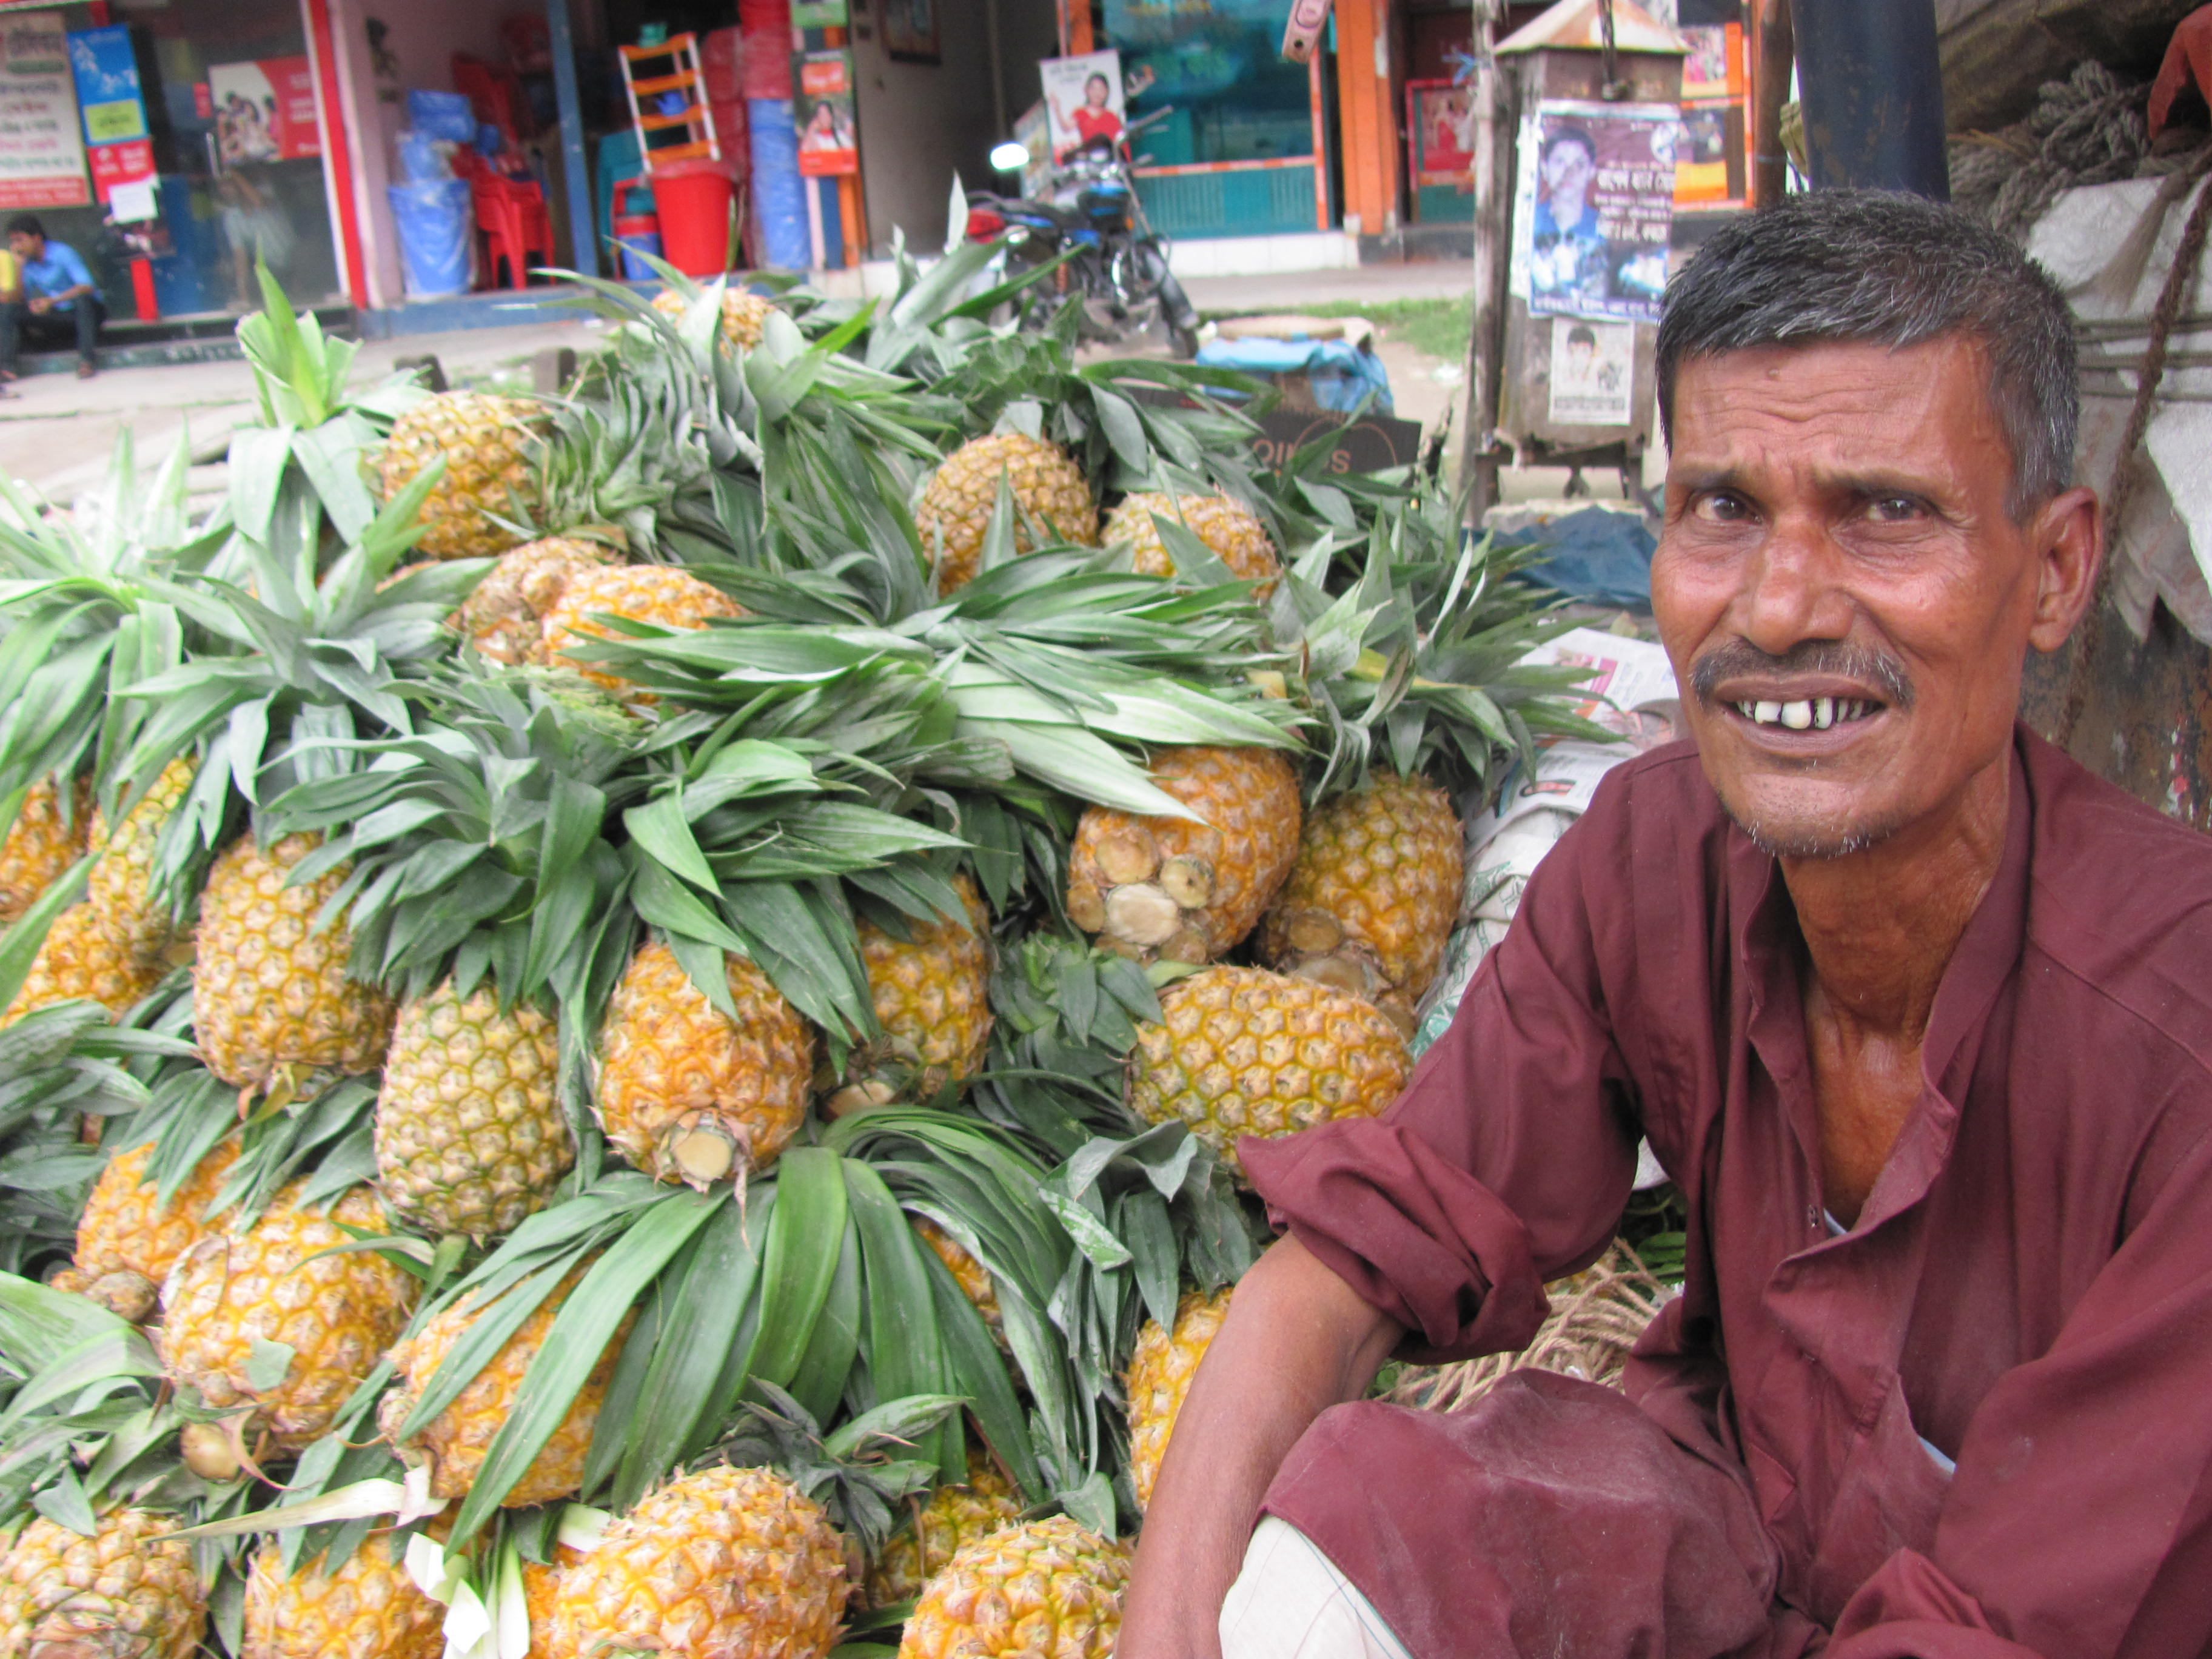 an analysis of the health risk in the communities in bangladesh Microfinance and the business of poverty reduction: critical perspectives from  of risk in the communities we  critical perspectives from rural bangladesh.